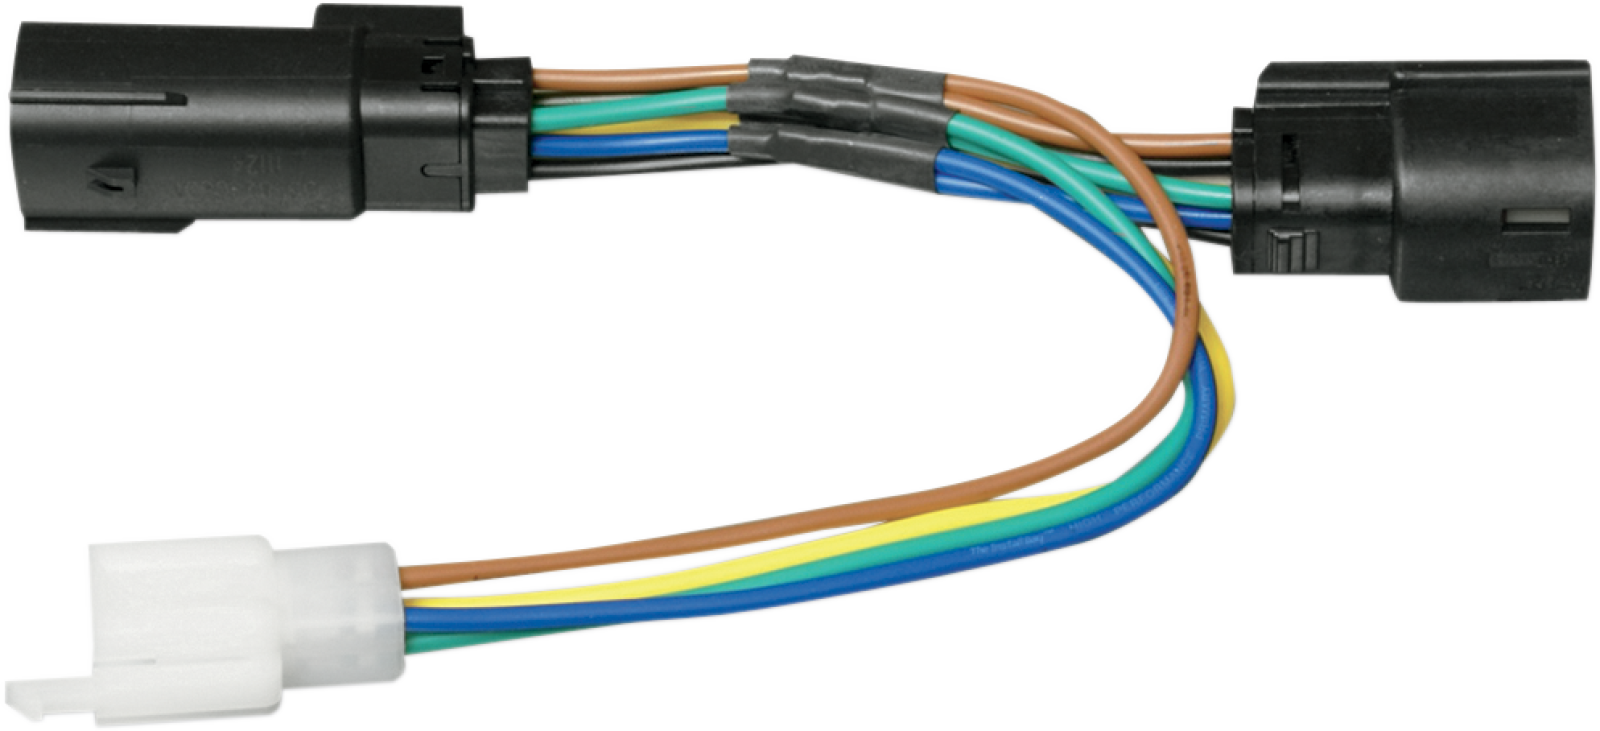 6 Wire Trailer Harness Wiring Diagram Will Be A Thing Motorcycle Rivco Products Pin Molex Sub Clamp